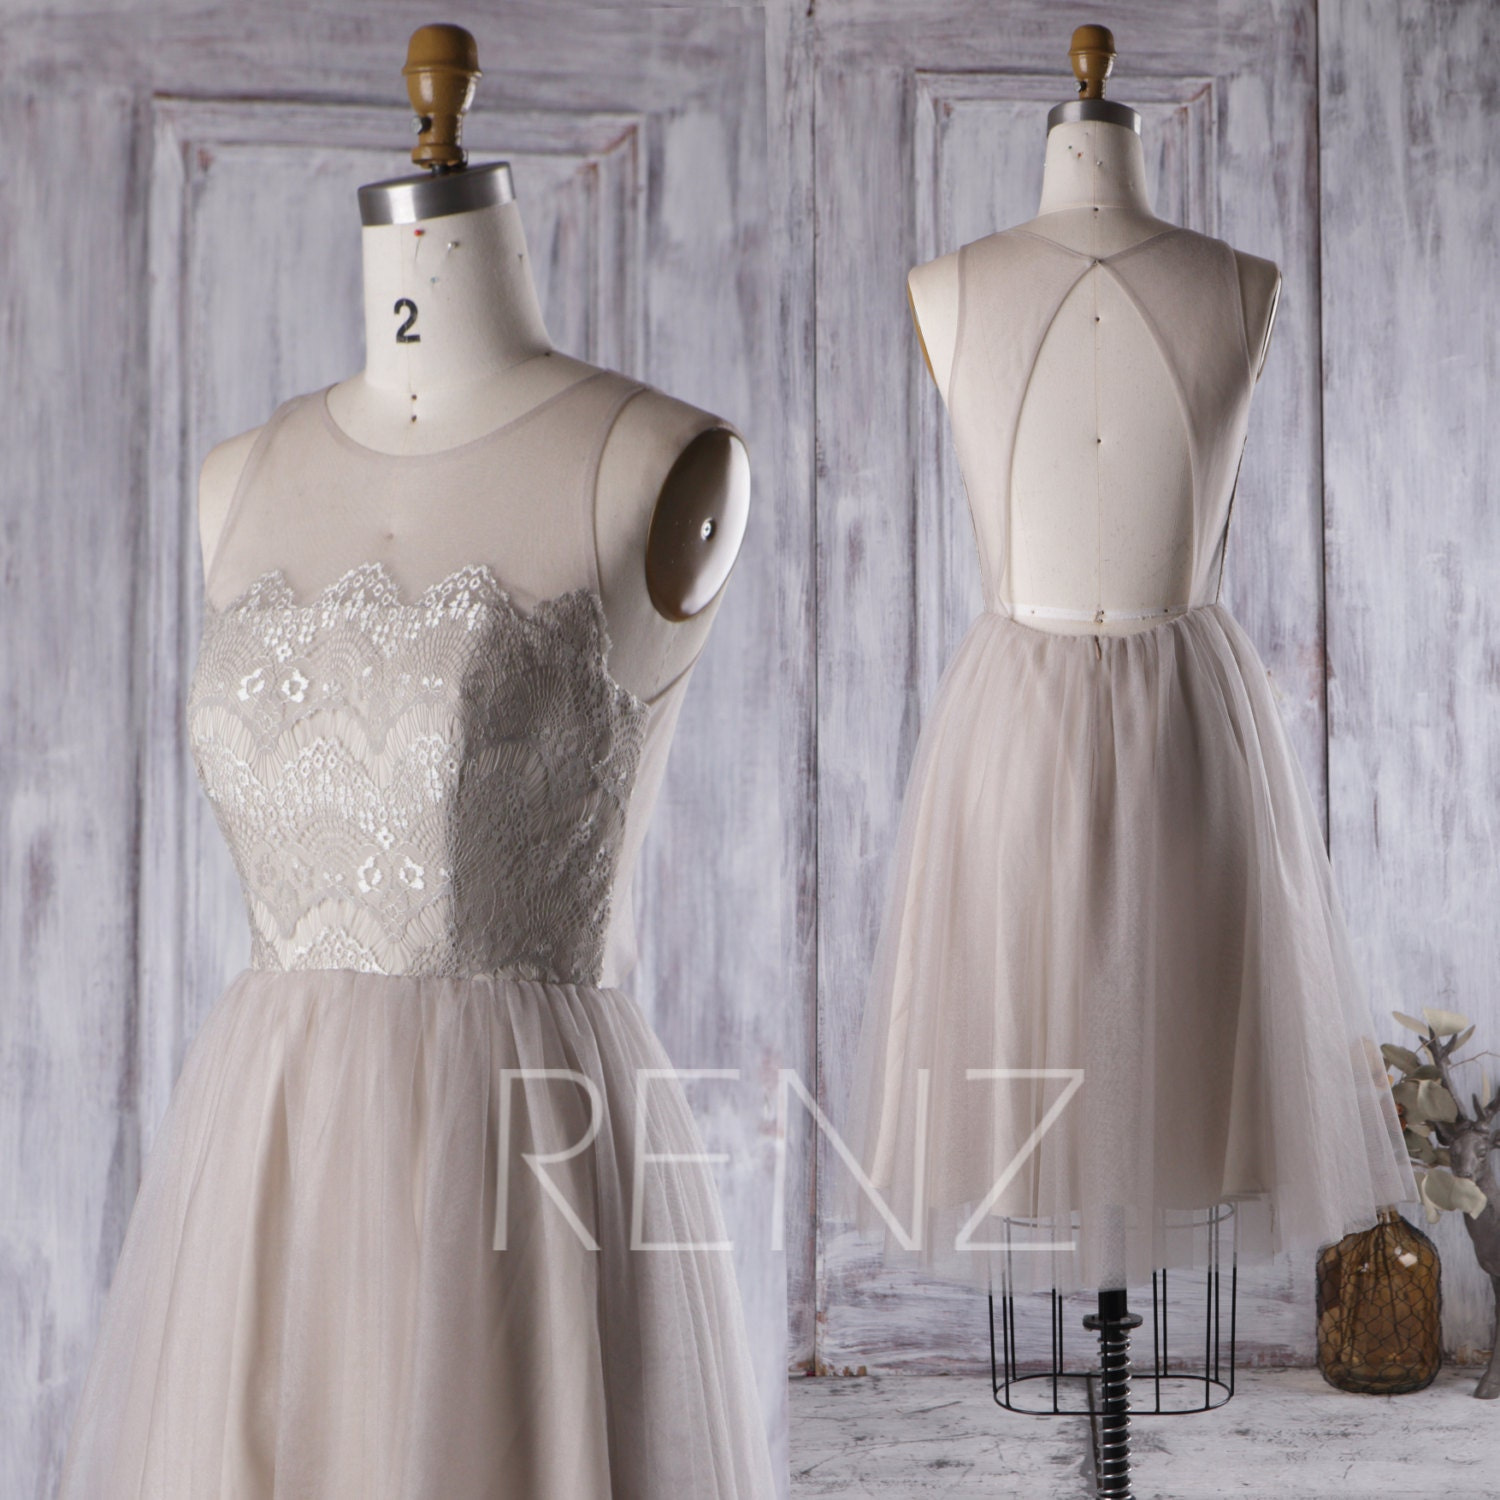 2017 light gray bridesmaid dress lace illusion neck wedding for Light grey wedding dress